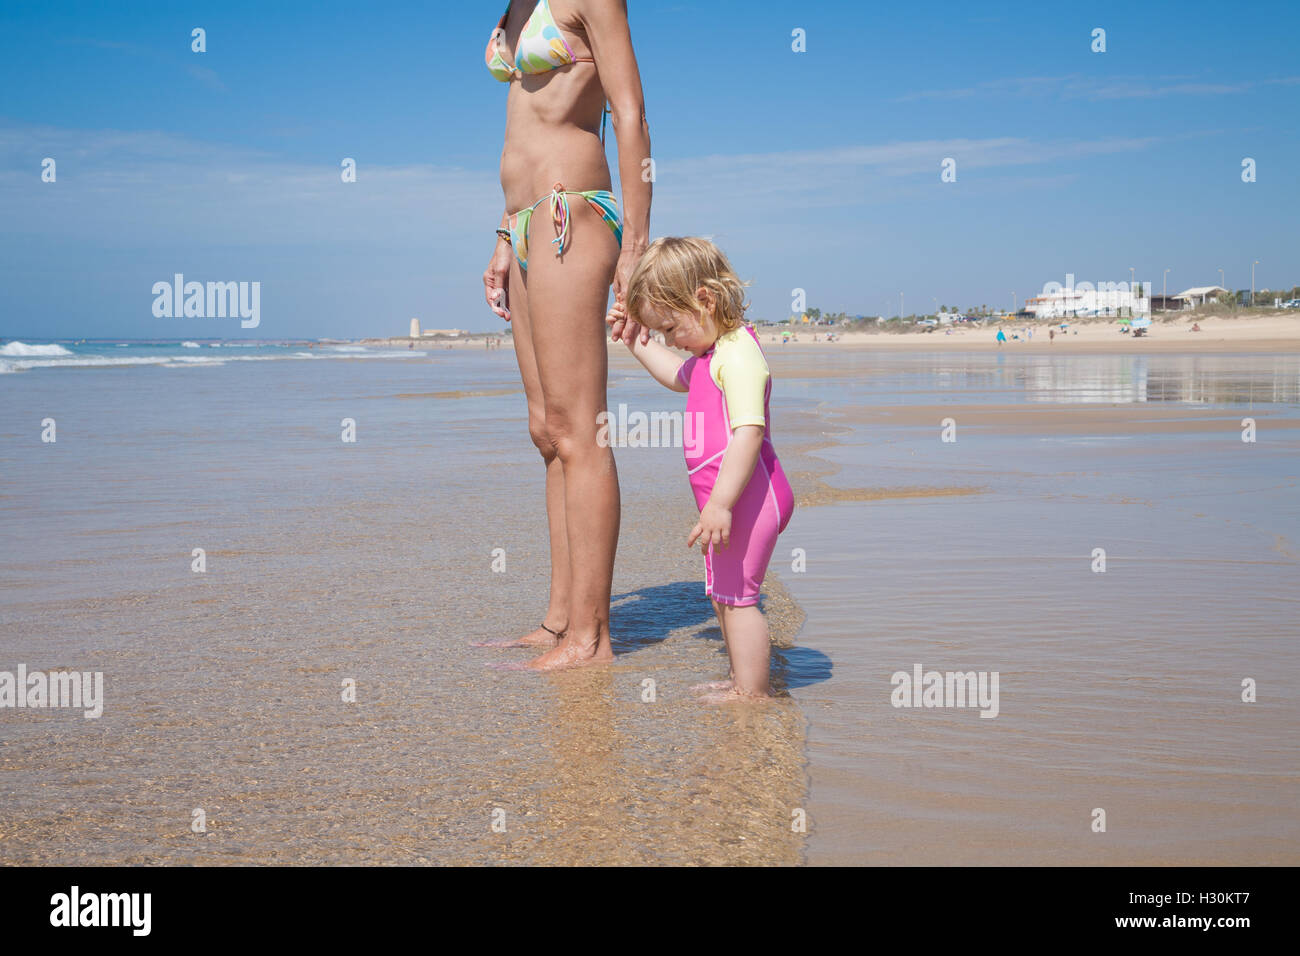 summer family of two years old blonde baby with pink and yellow swimsuit  holding hand with brunette woman mother in bikini stand